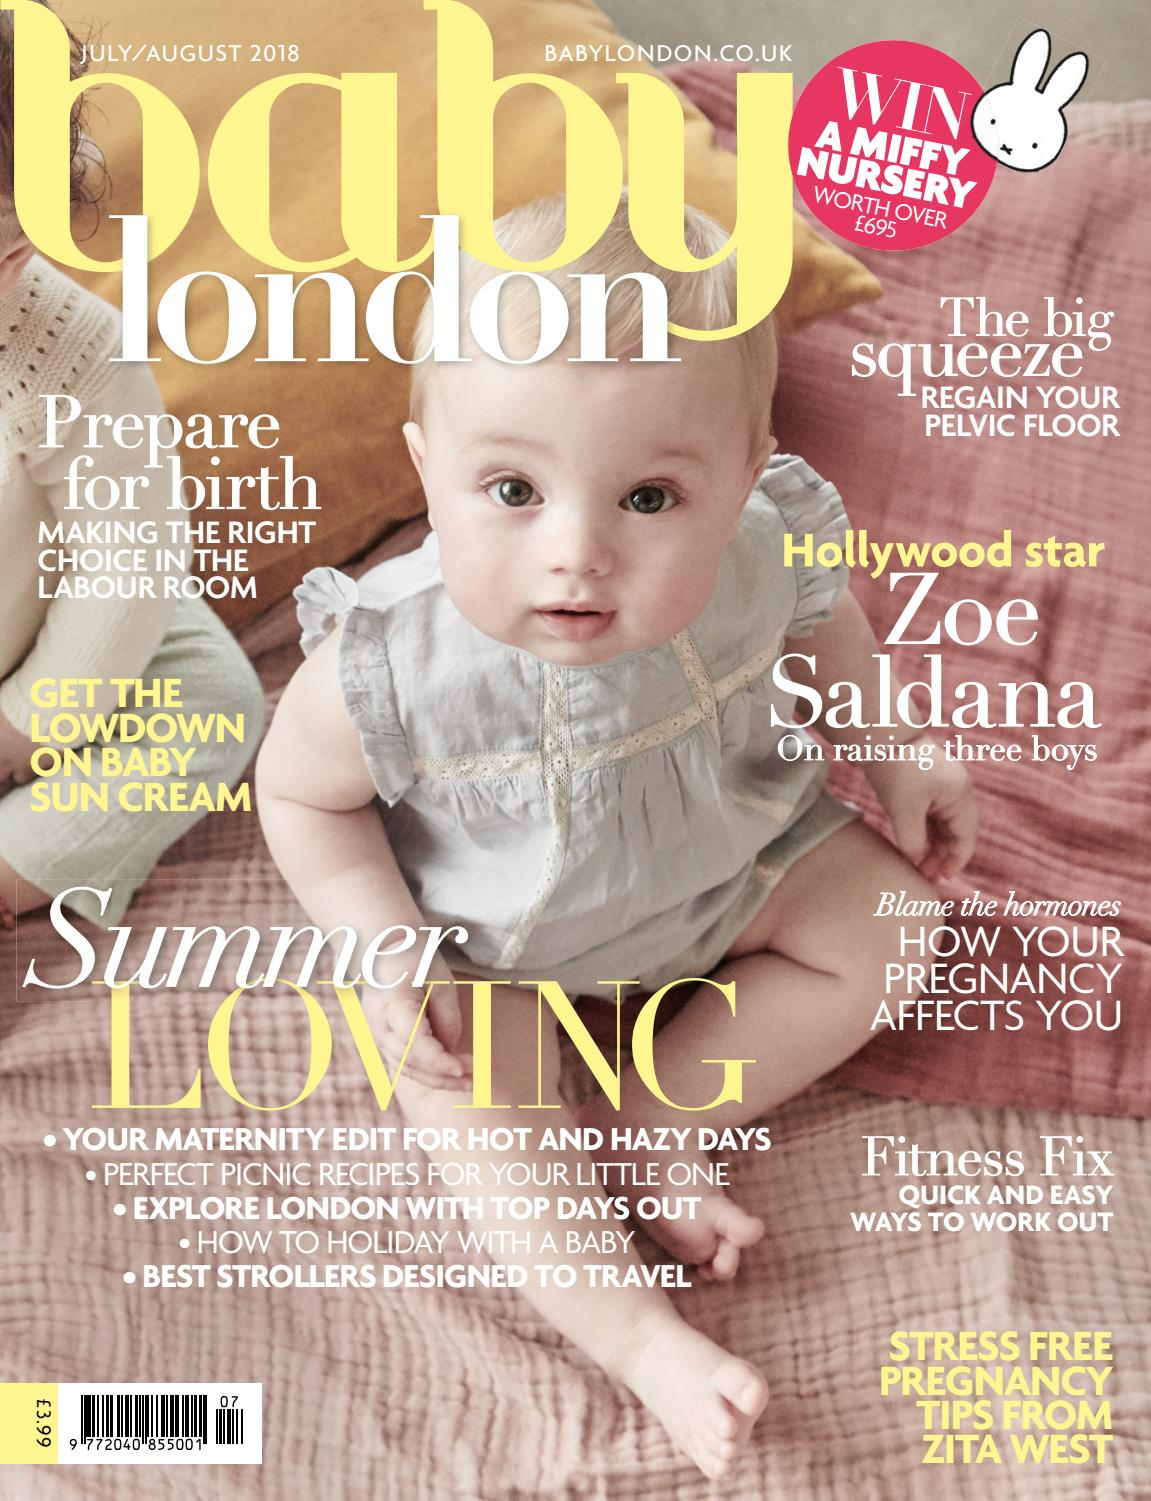 dc54c755b5 Baby London July August 2018 by The Chelsea Magazine Company - issuu